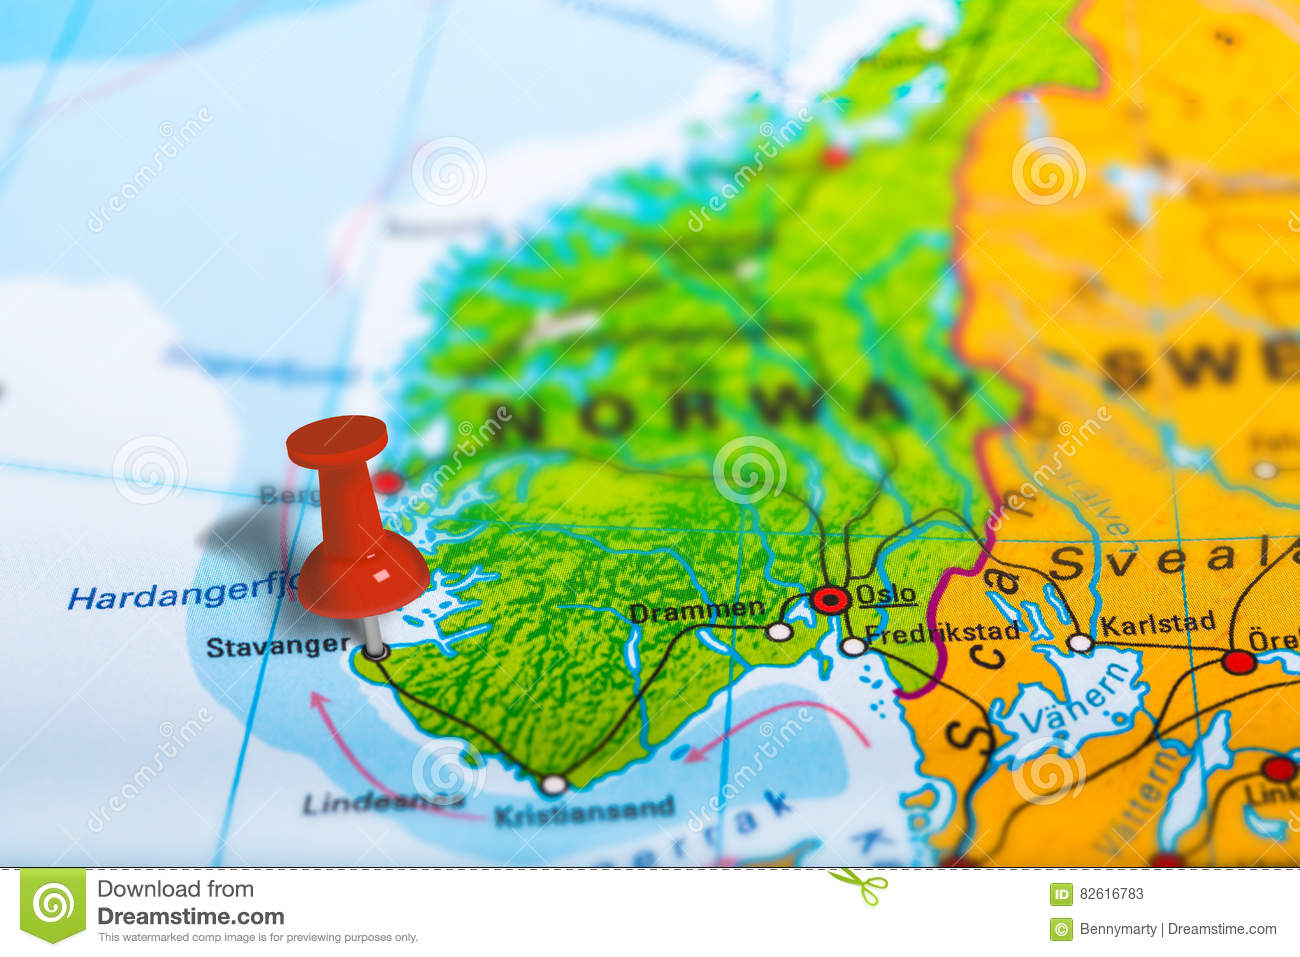 Stavanger Norway Map Stock Photo Image - Norway map stavanger